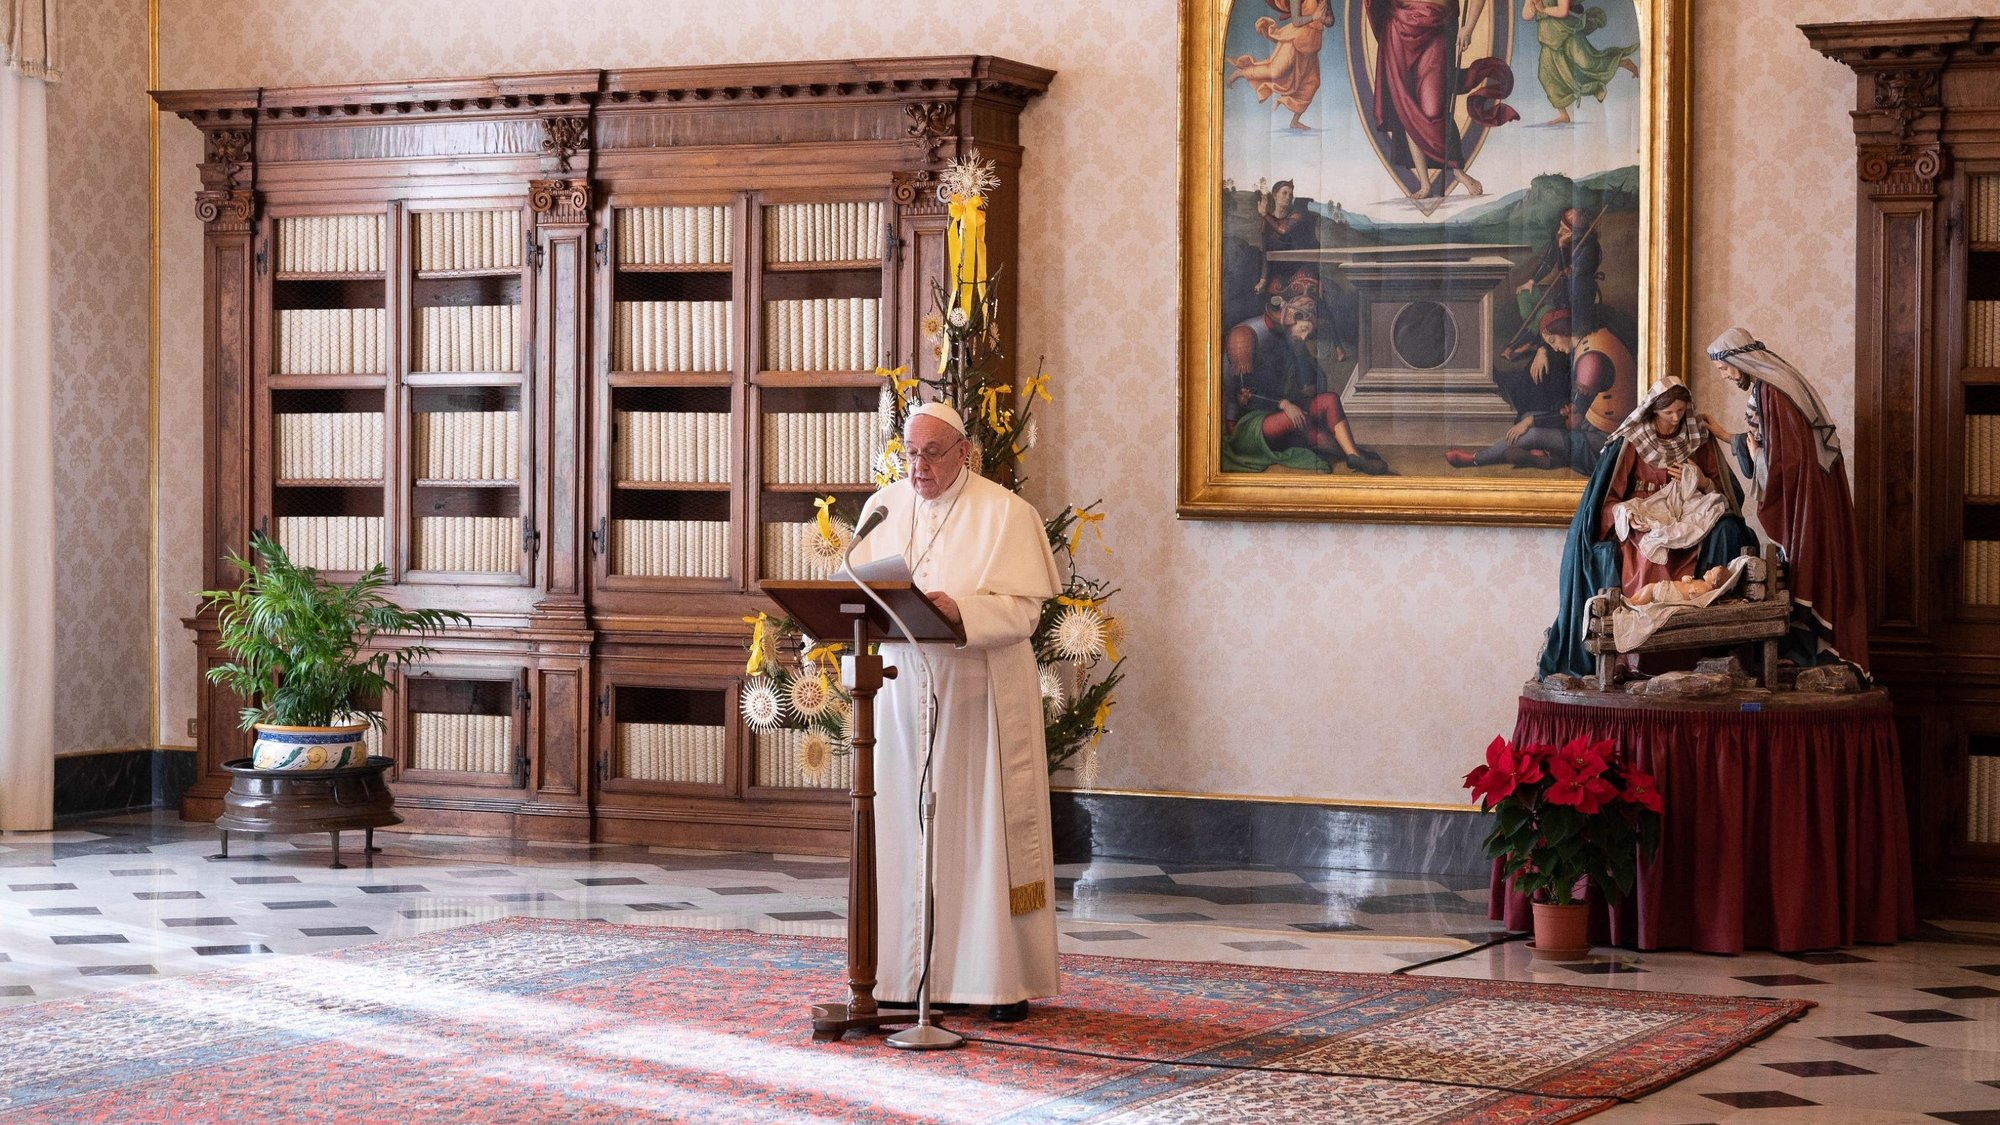 epa08907211 A handout picture provided by the Vatican Media shows Pope Francis during his Angelus Prayer from the library of the Palazzo Apostolico, in Vatican City, 27 December 2020 (issued 28 December 2020).  EPA/VATICAN MEDIA HANDOUT  HANDOUT EDITORIAL USE ONLY/NO SALES